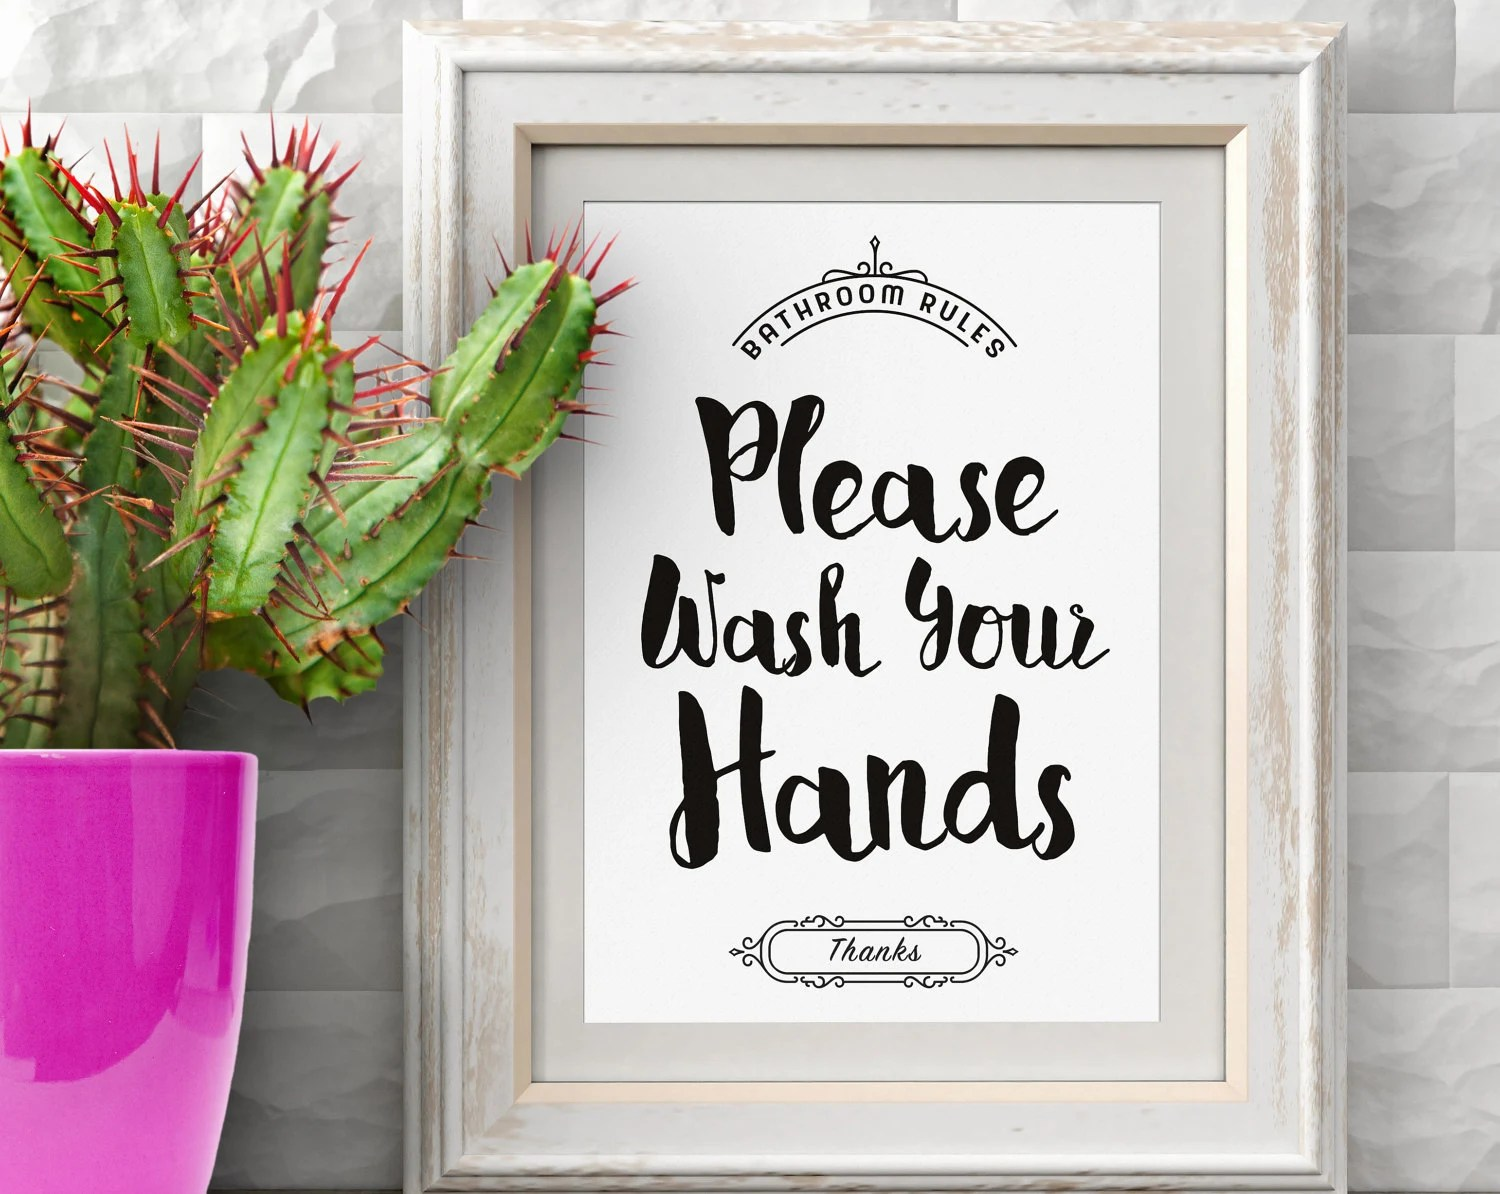 Please Wash Your Hands Hand Washing Poster Wash Hands Sign